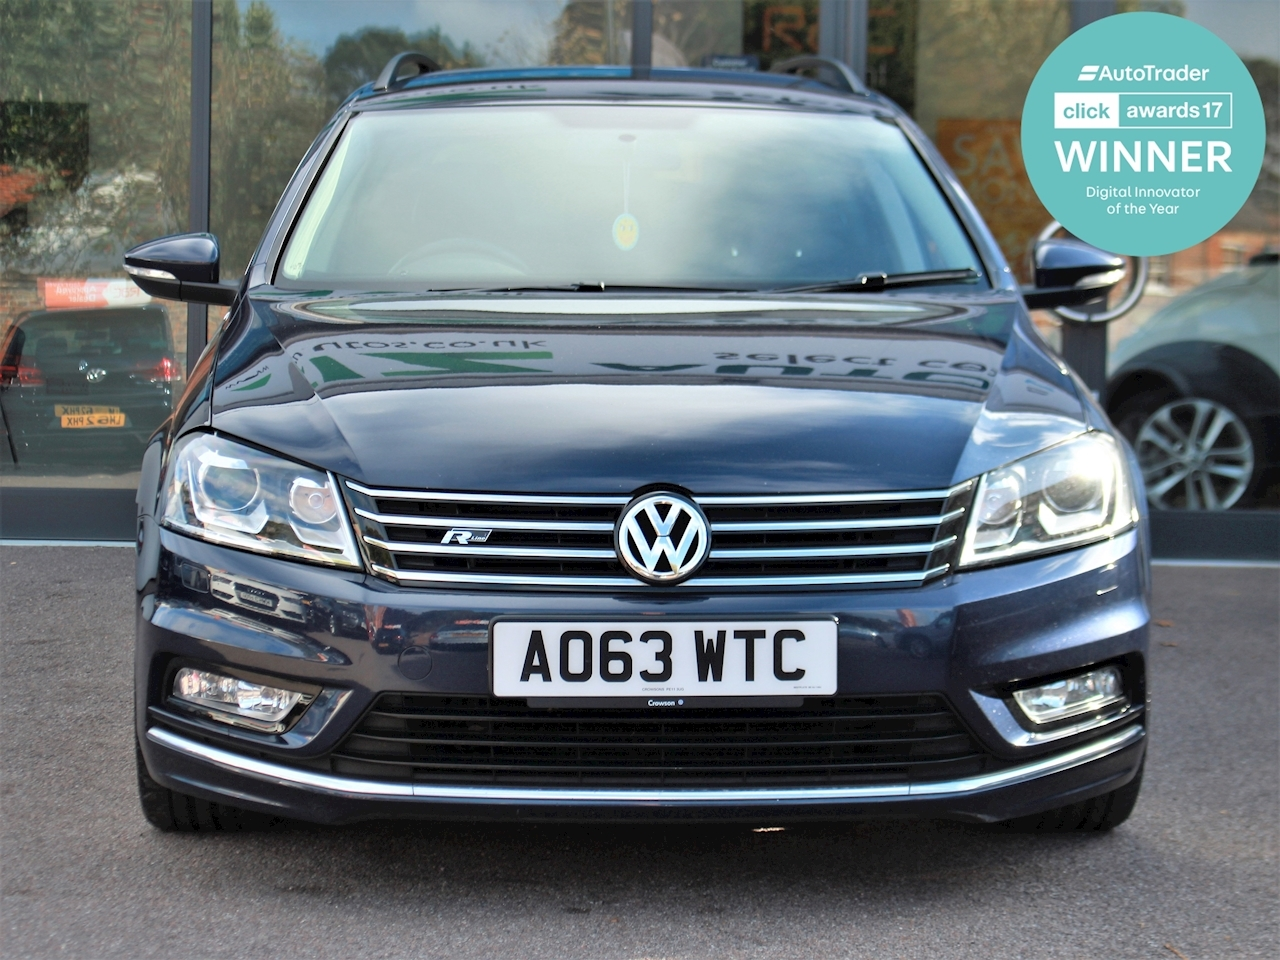 Volkswagen Passat R Line Tdi Bluemotion Technology - Large 1